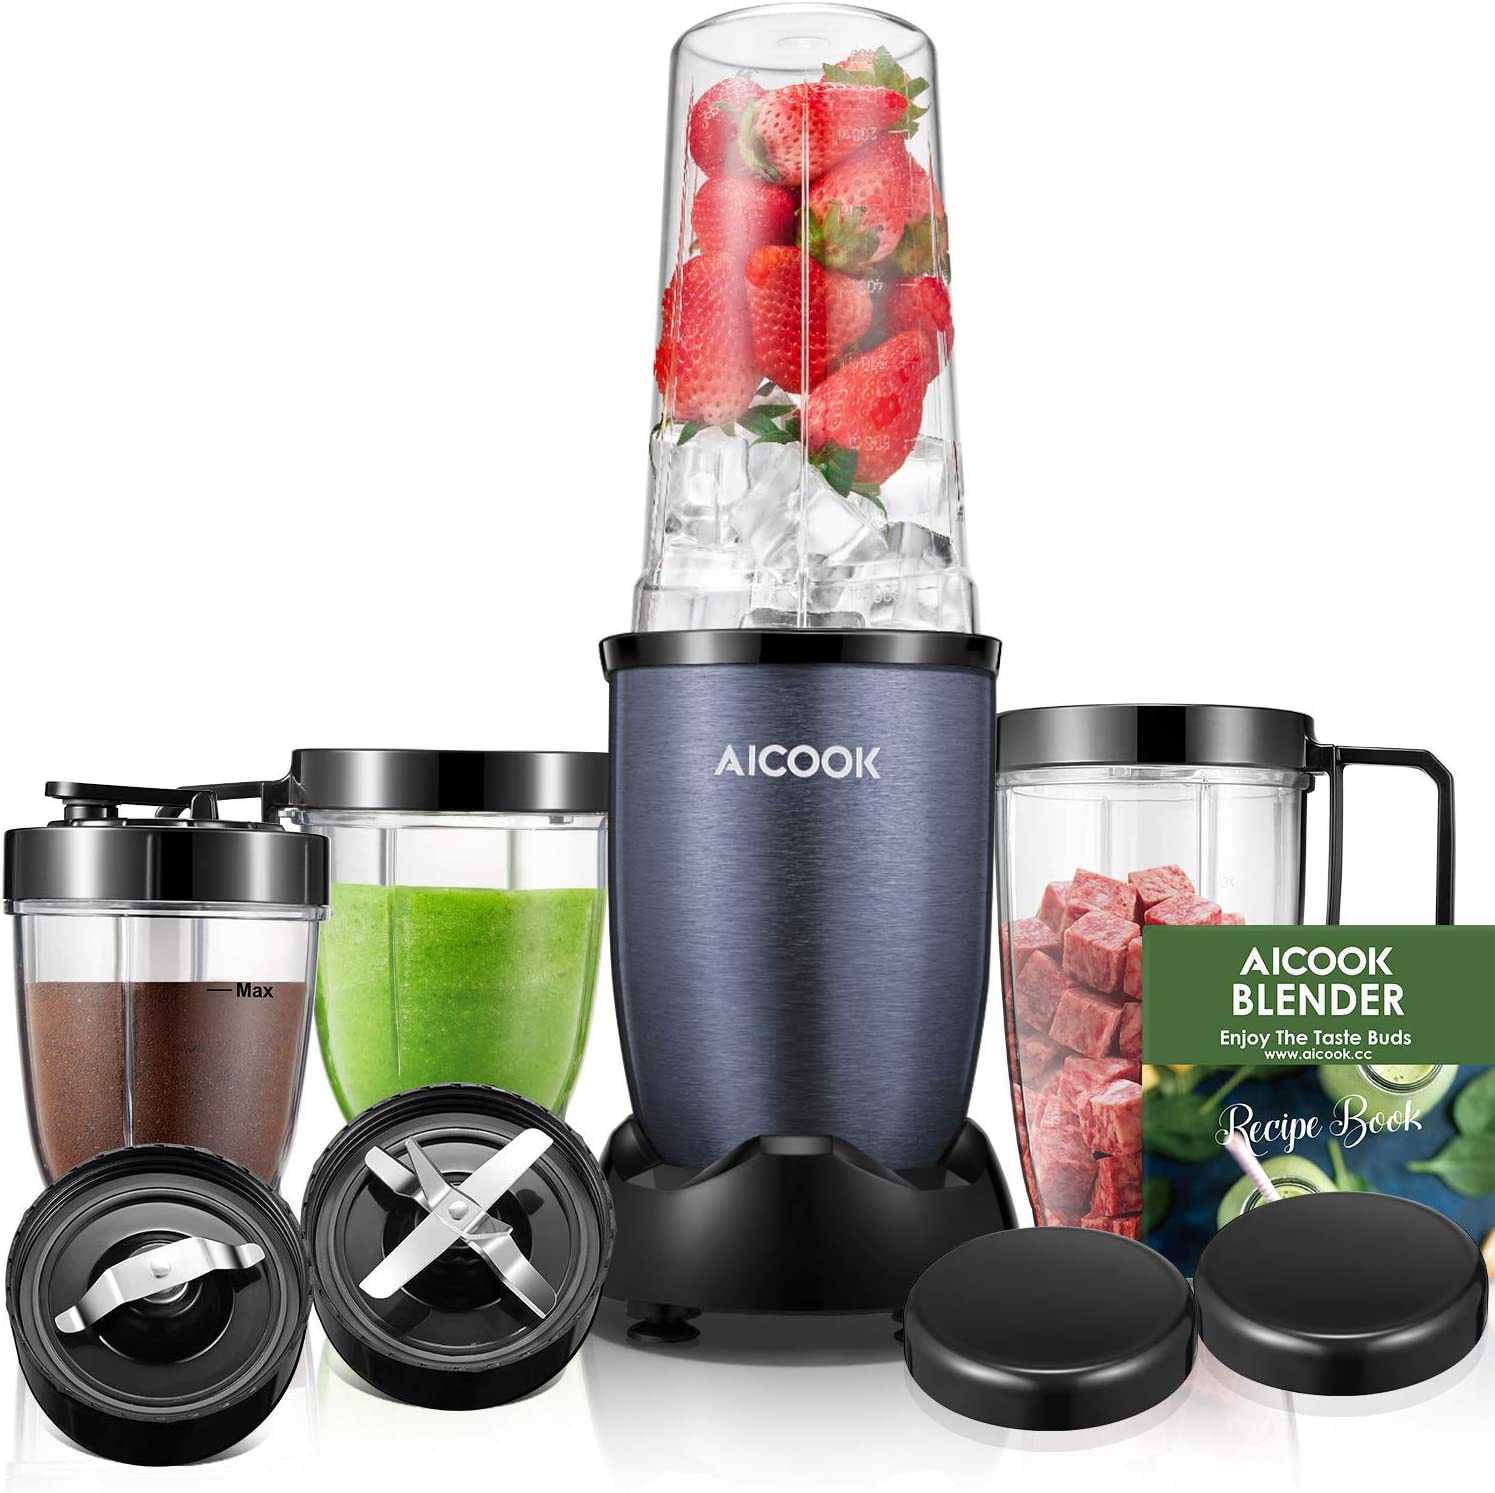 AICOOK Smoothie Blender Personal Blender for Shakes and Smoothies Bullet Blender Meat Chopper Coffee Grinder Food Processor Combo with 4 Cups 780W